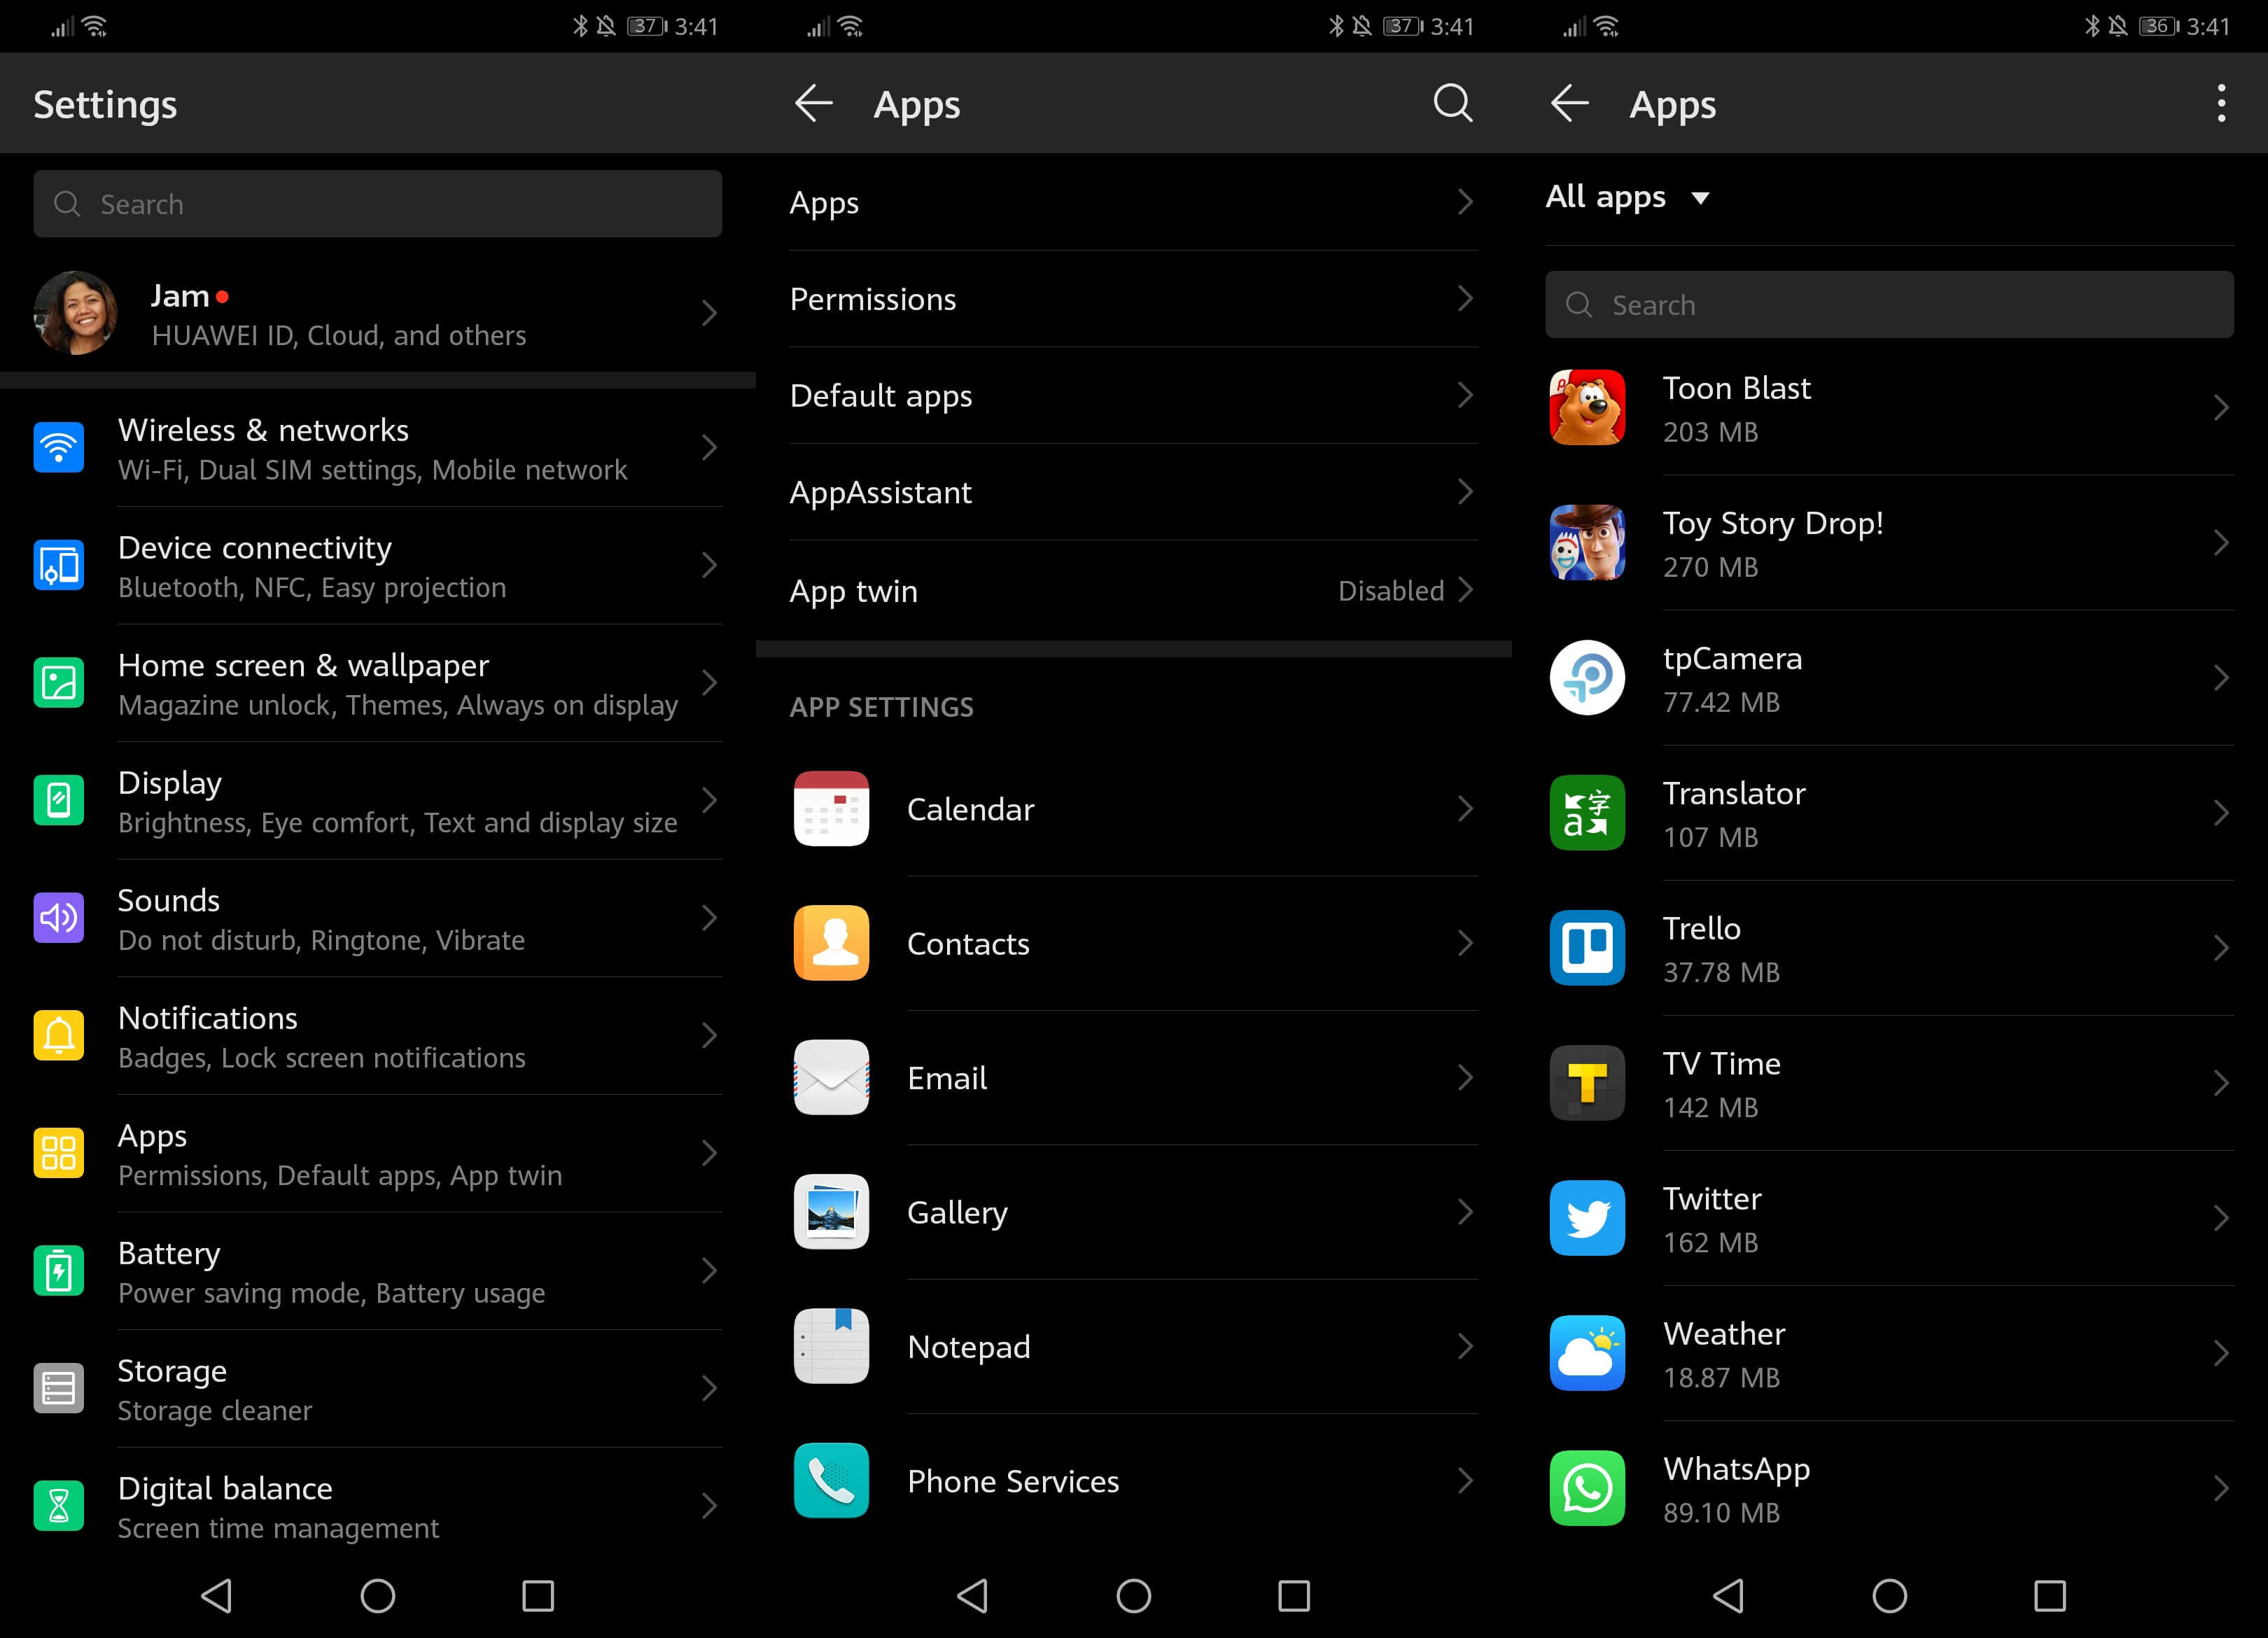 uninstall android apps - delete apps on android phones